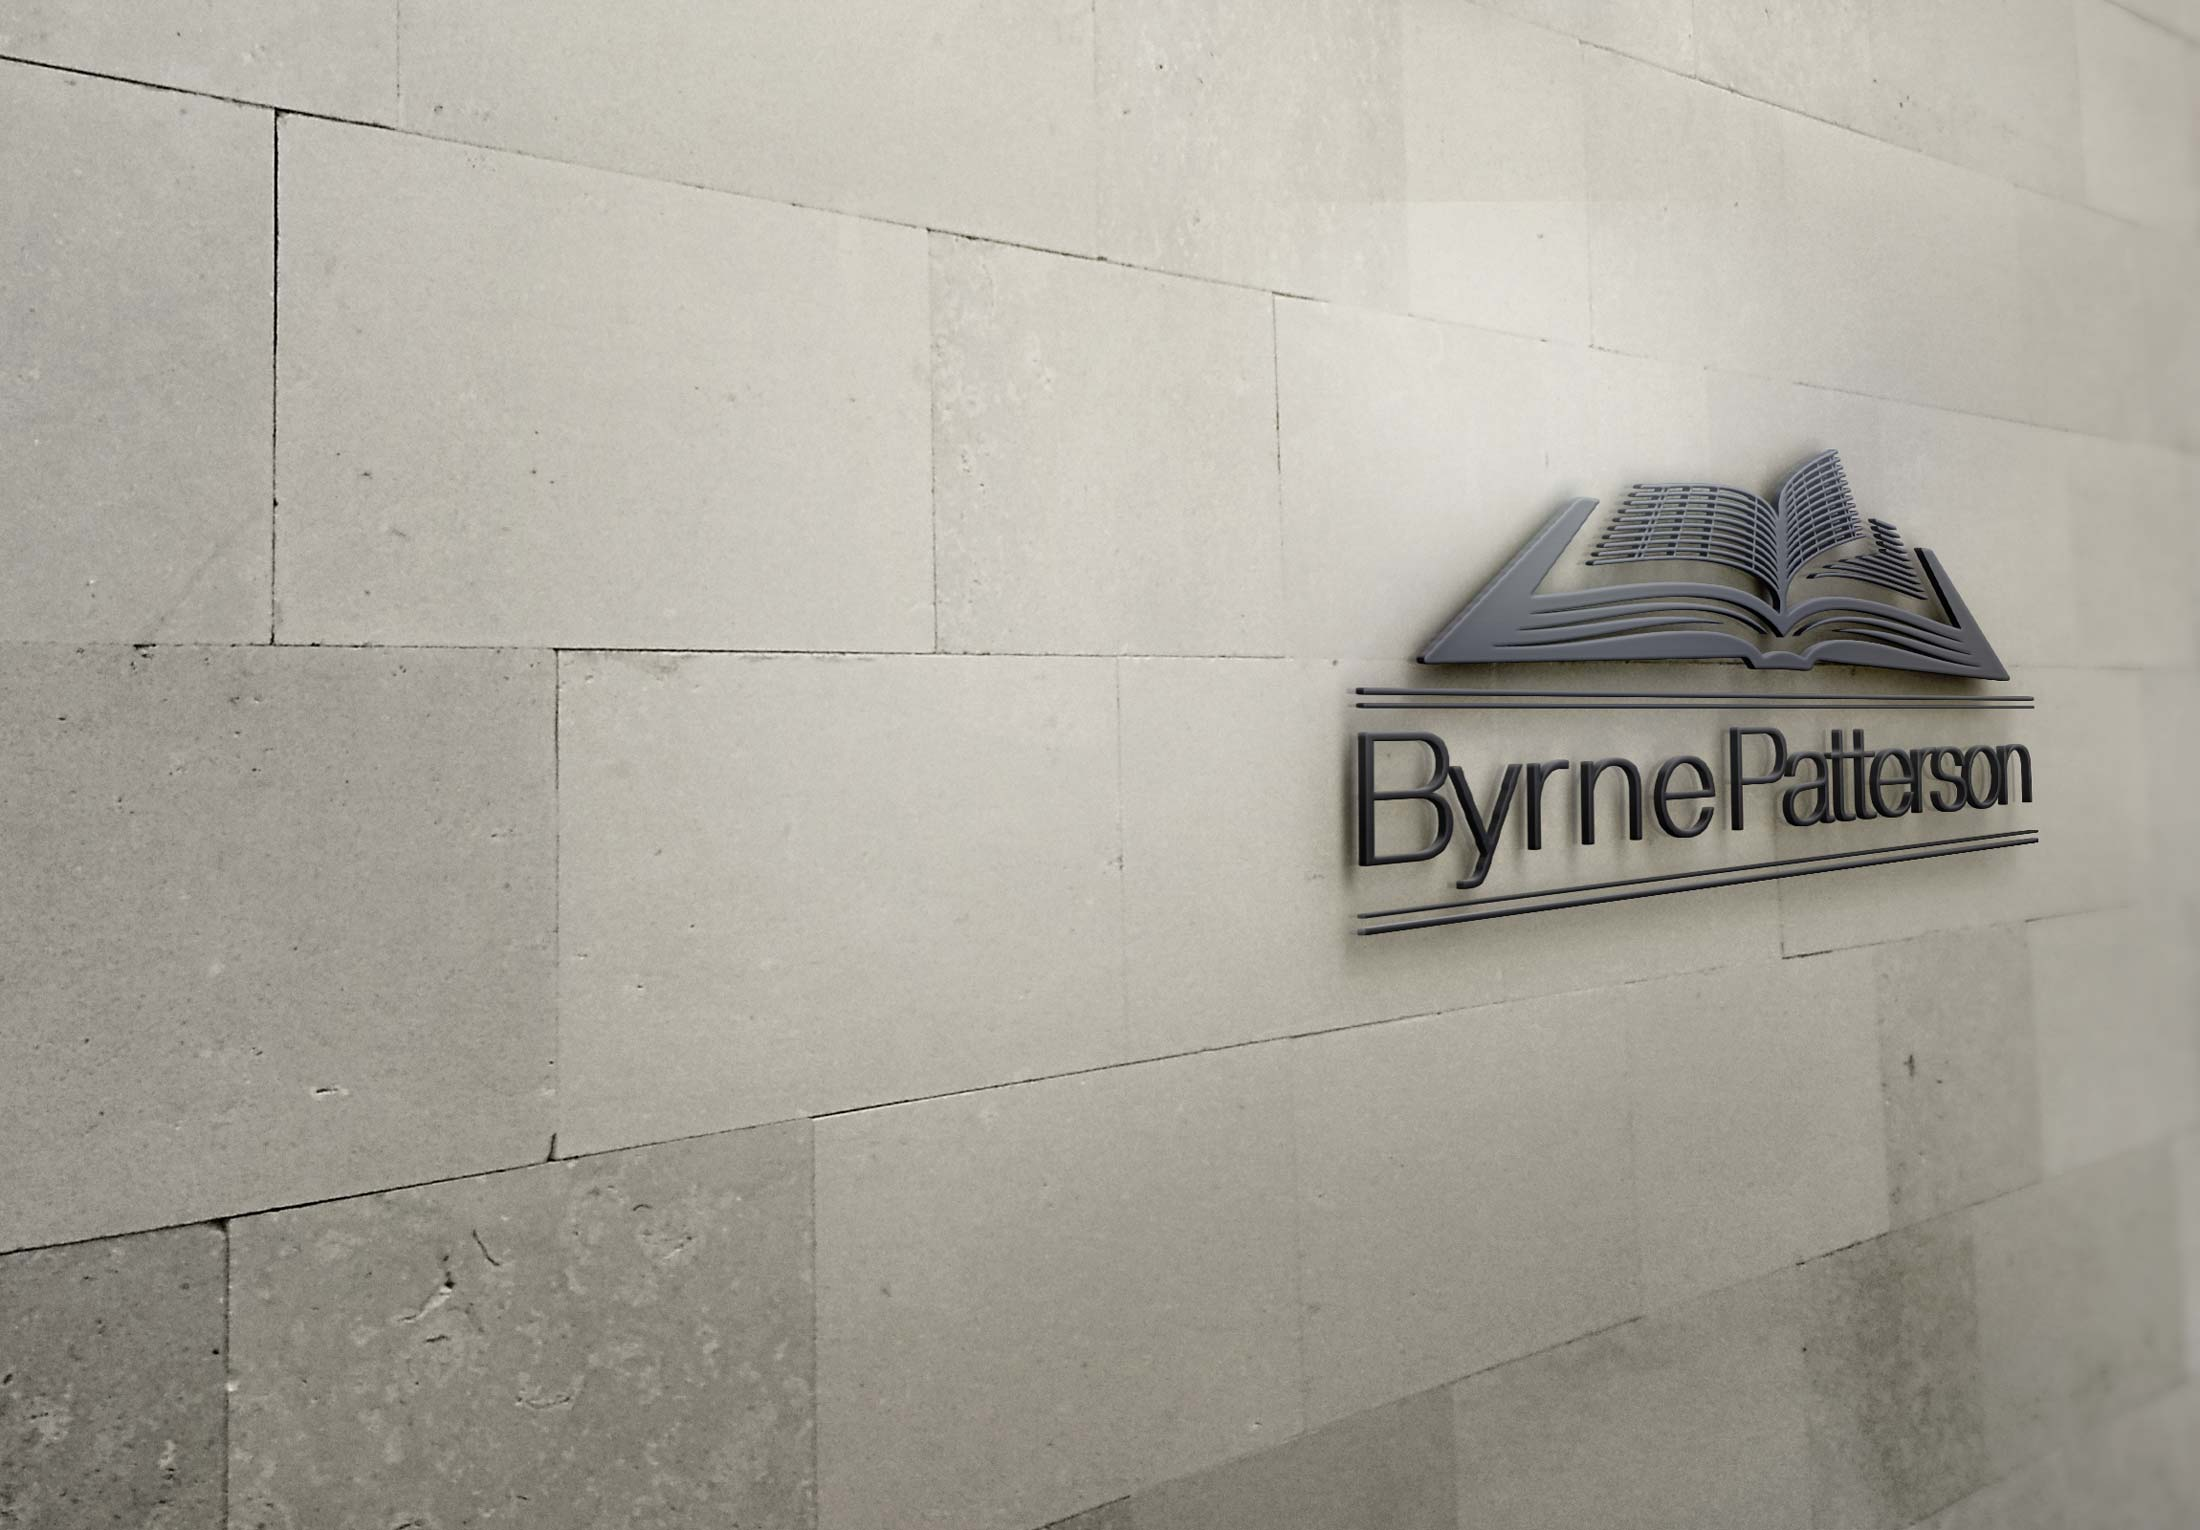 Byrne Patterson & Co